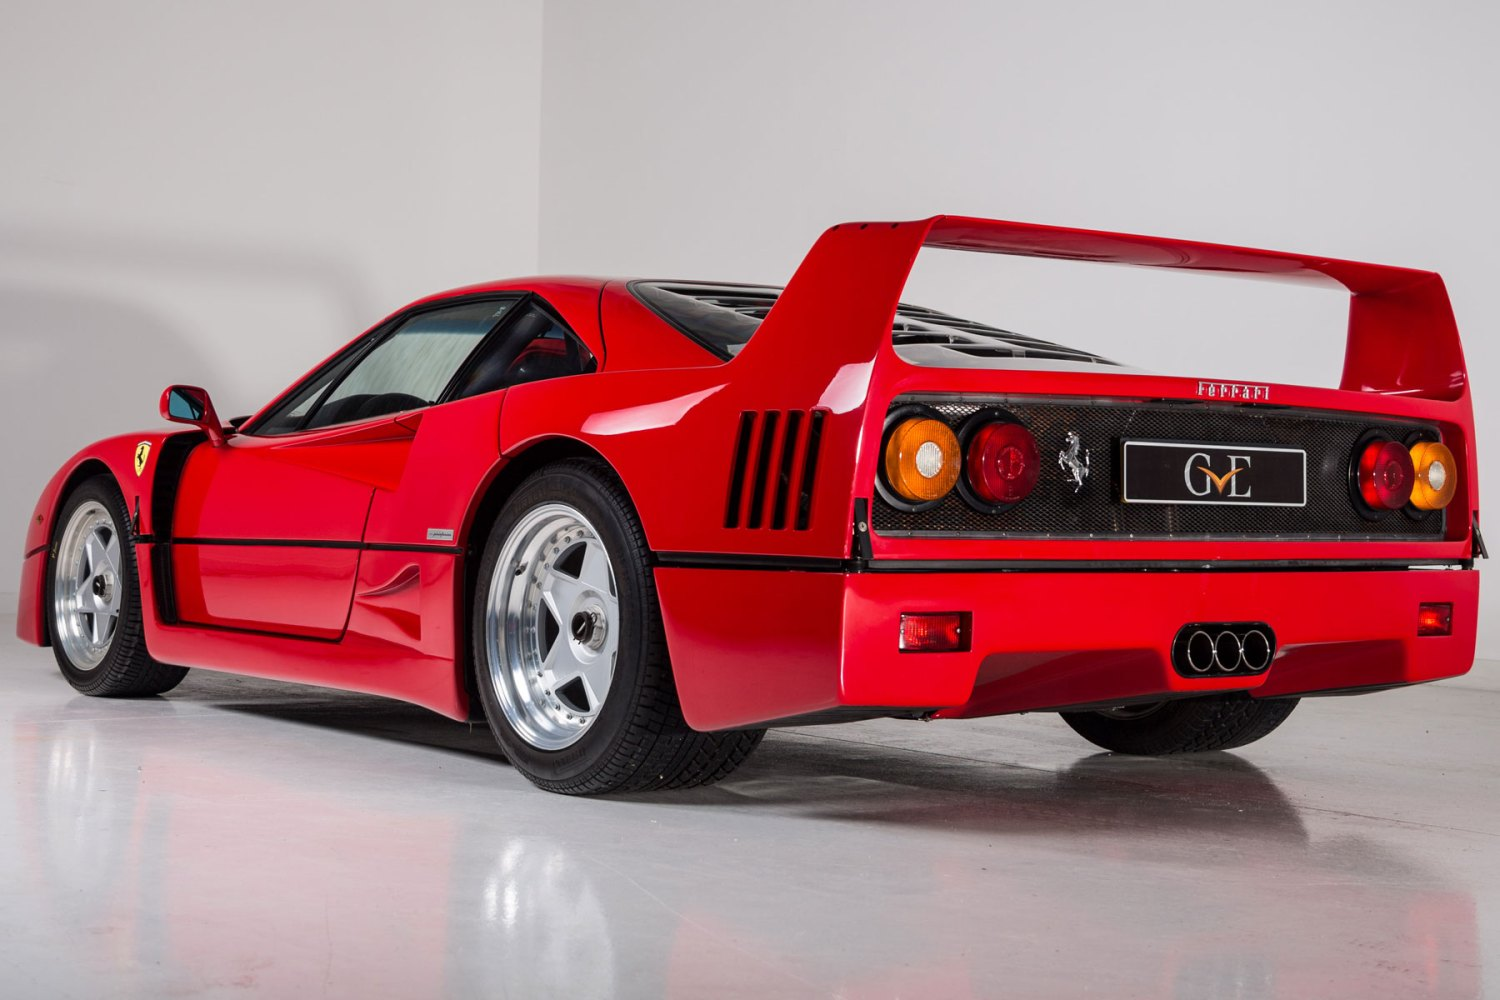 Ferrari F40 owned by Eric Clapton